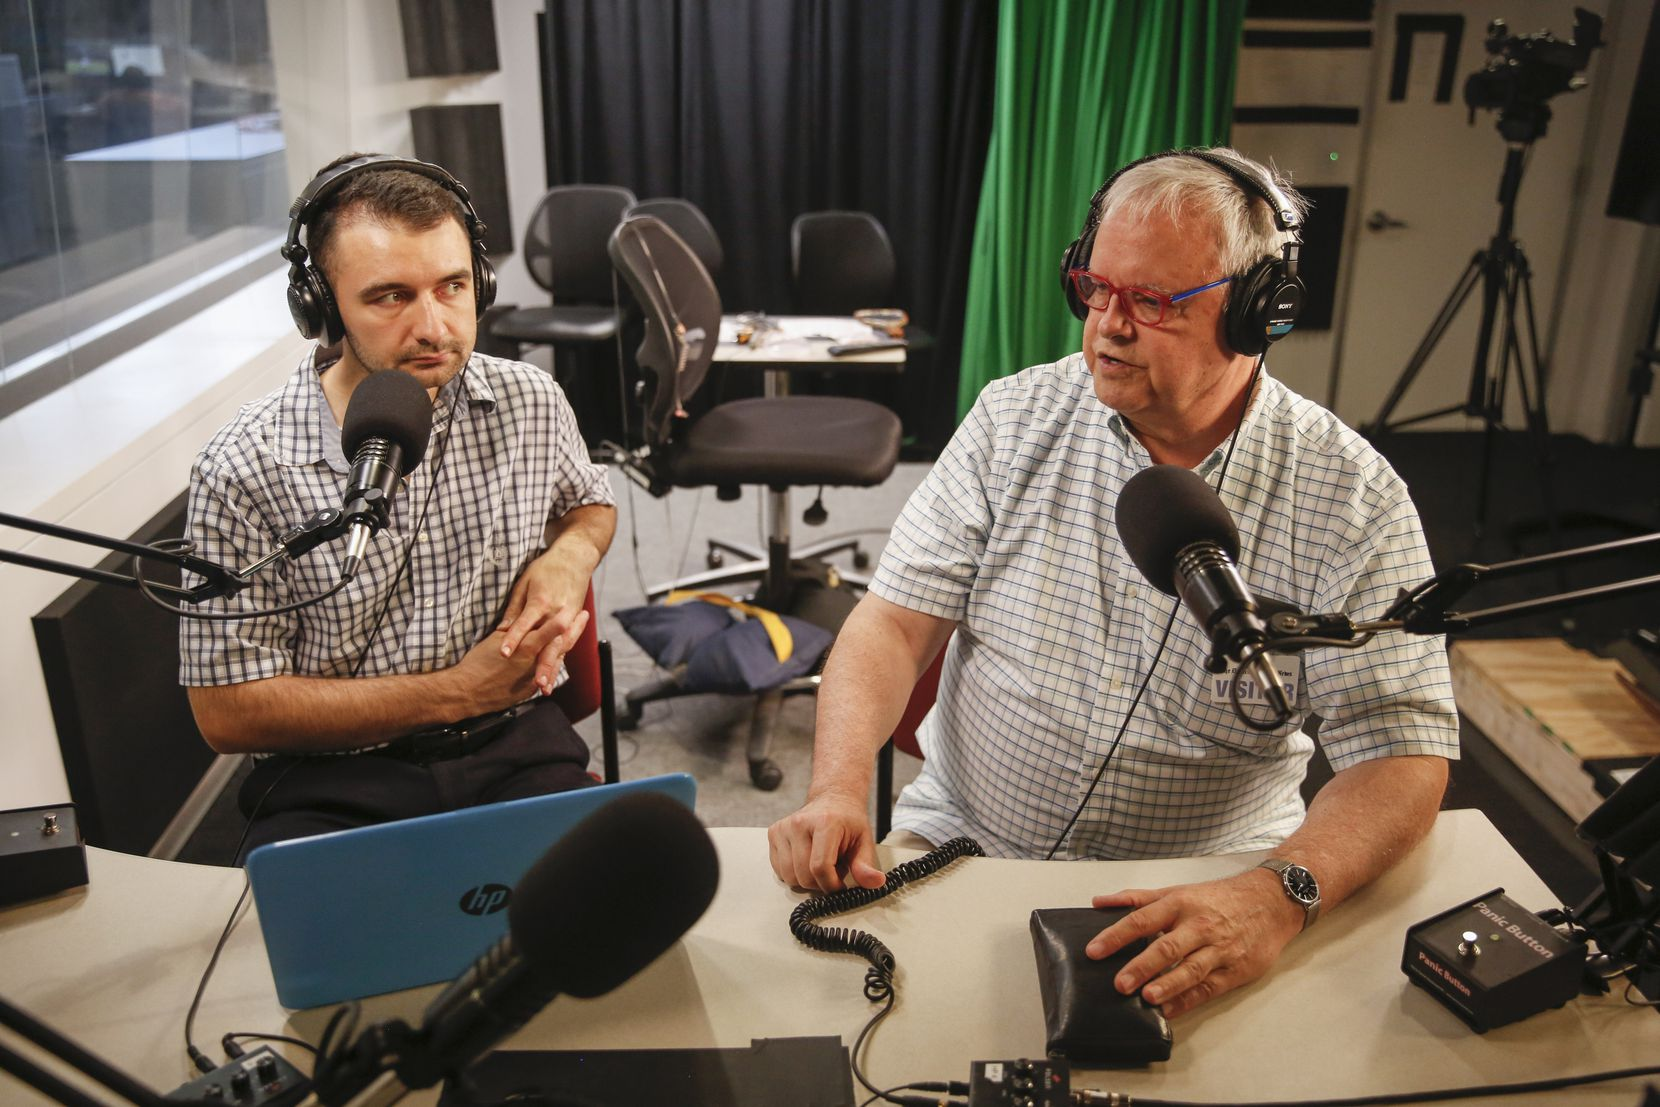 Tim Diovanni, left, interviews critic Scott Cantrell in 2019 for the classical music podcast project 'How to Listen' at The Dallas Morning News studio.